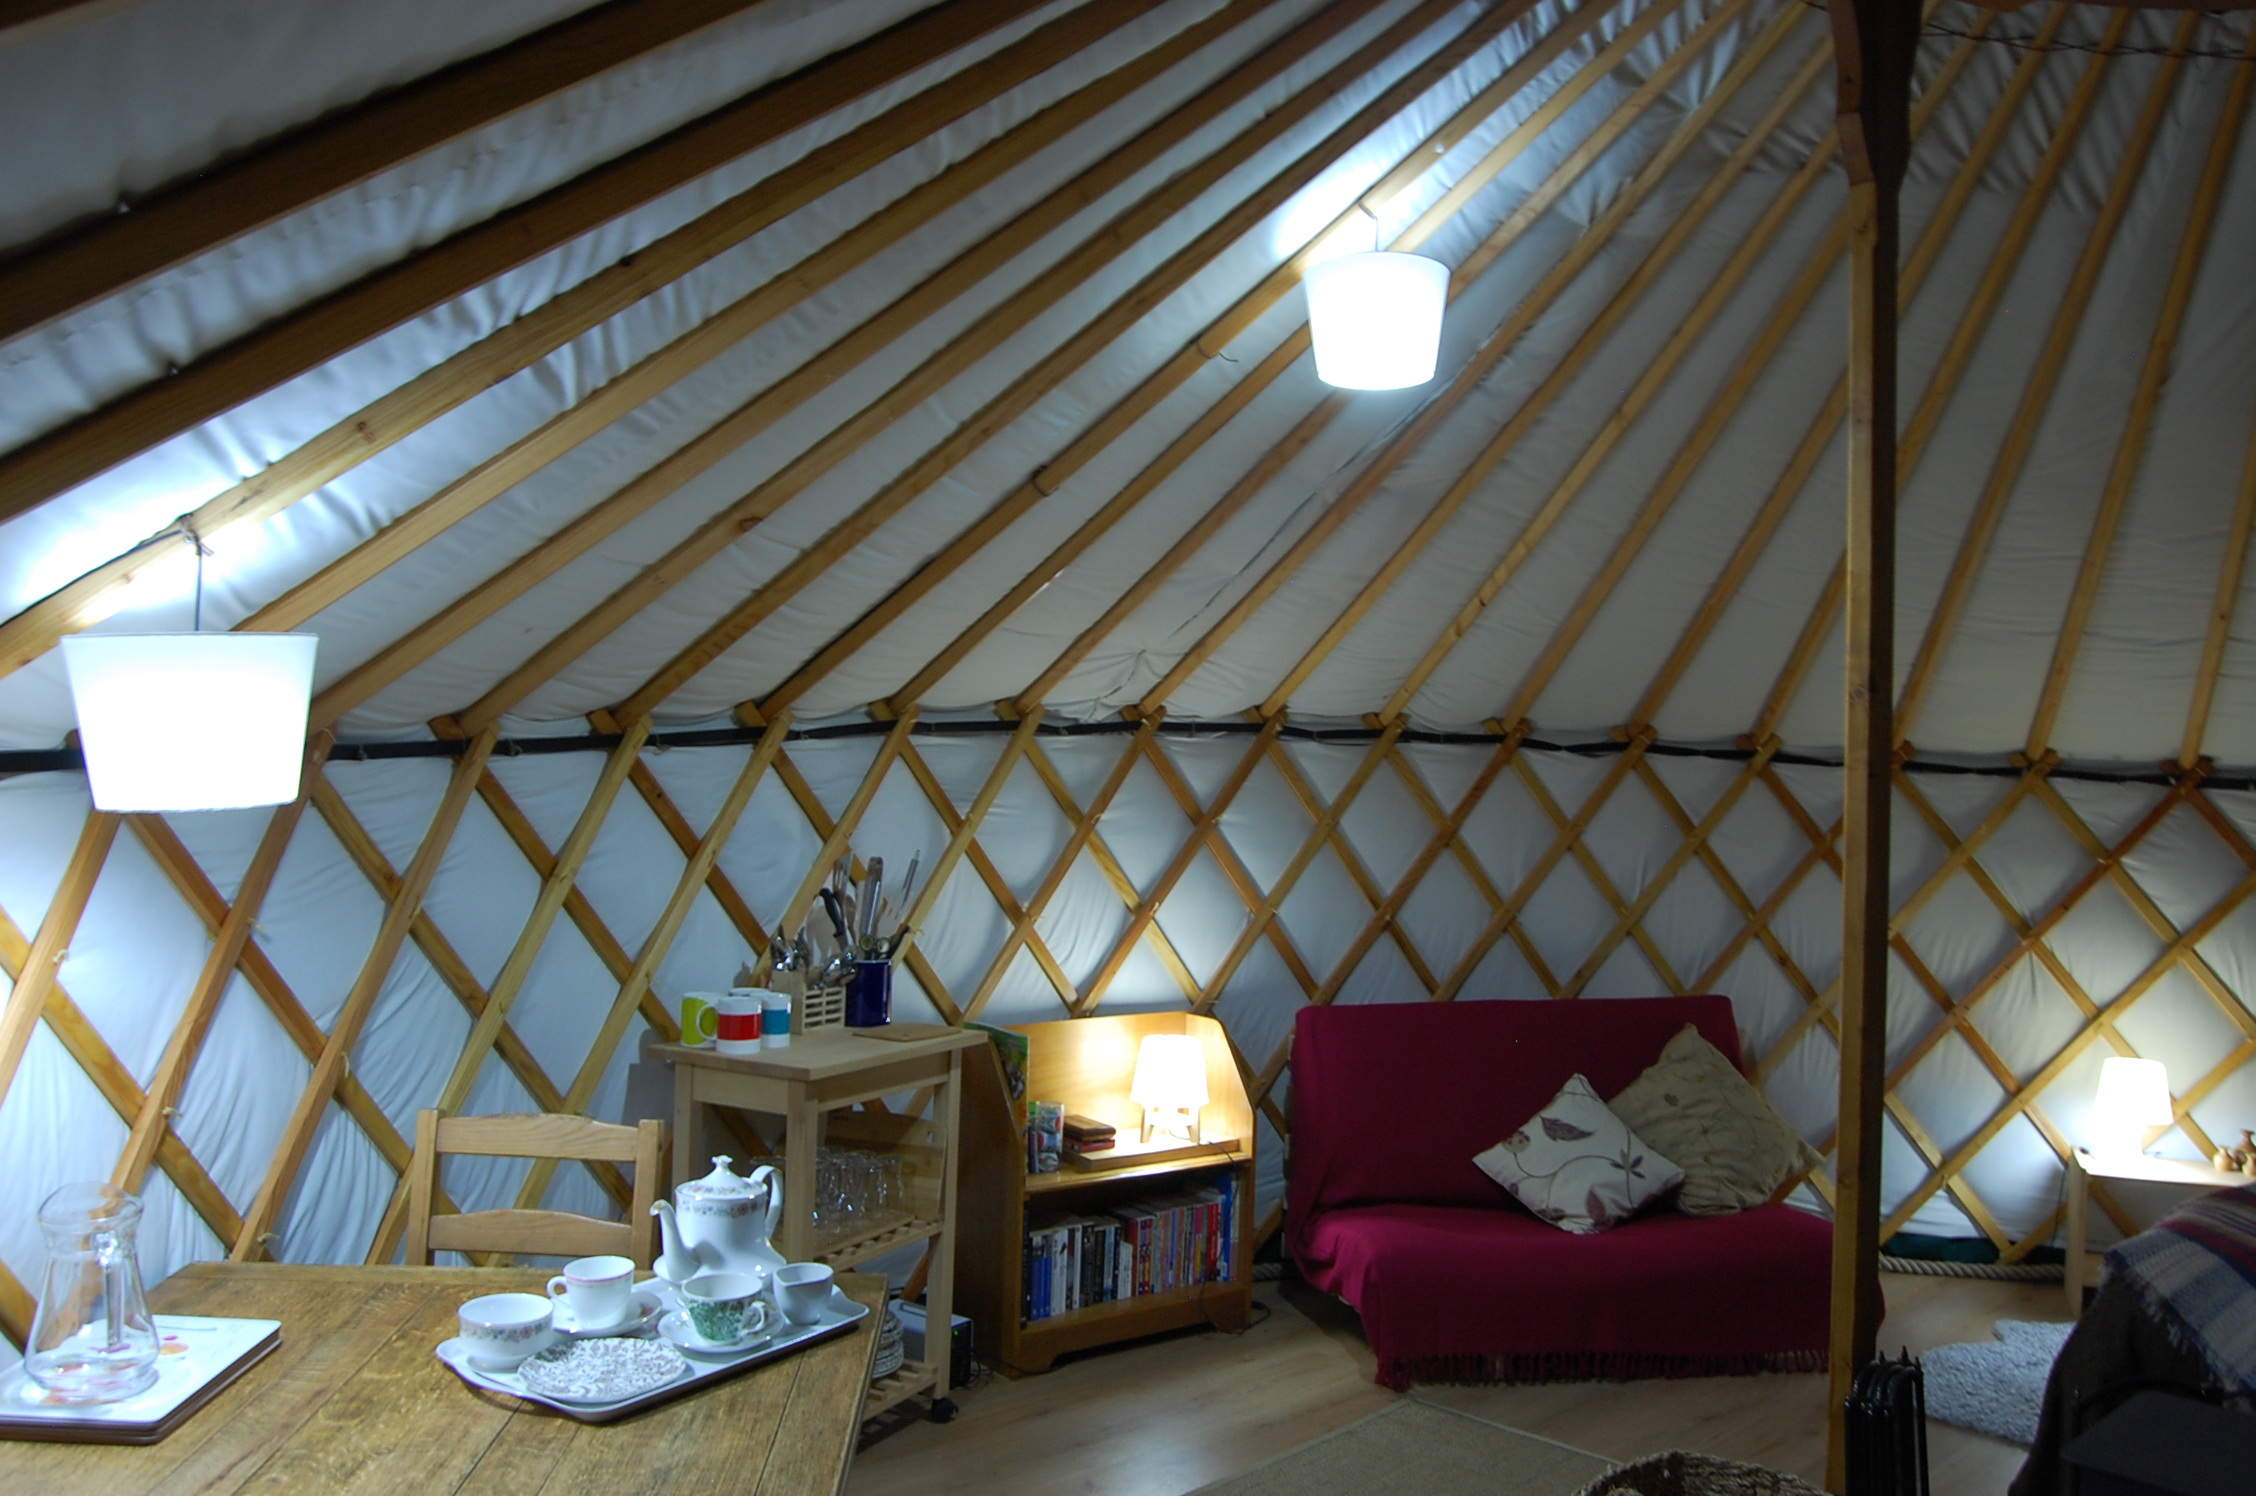 the yurts contain 4 solar powered lights